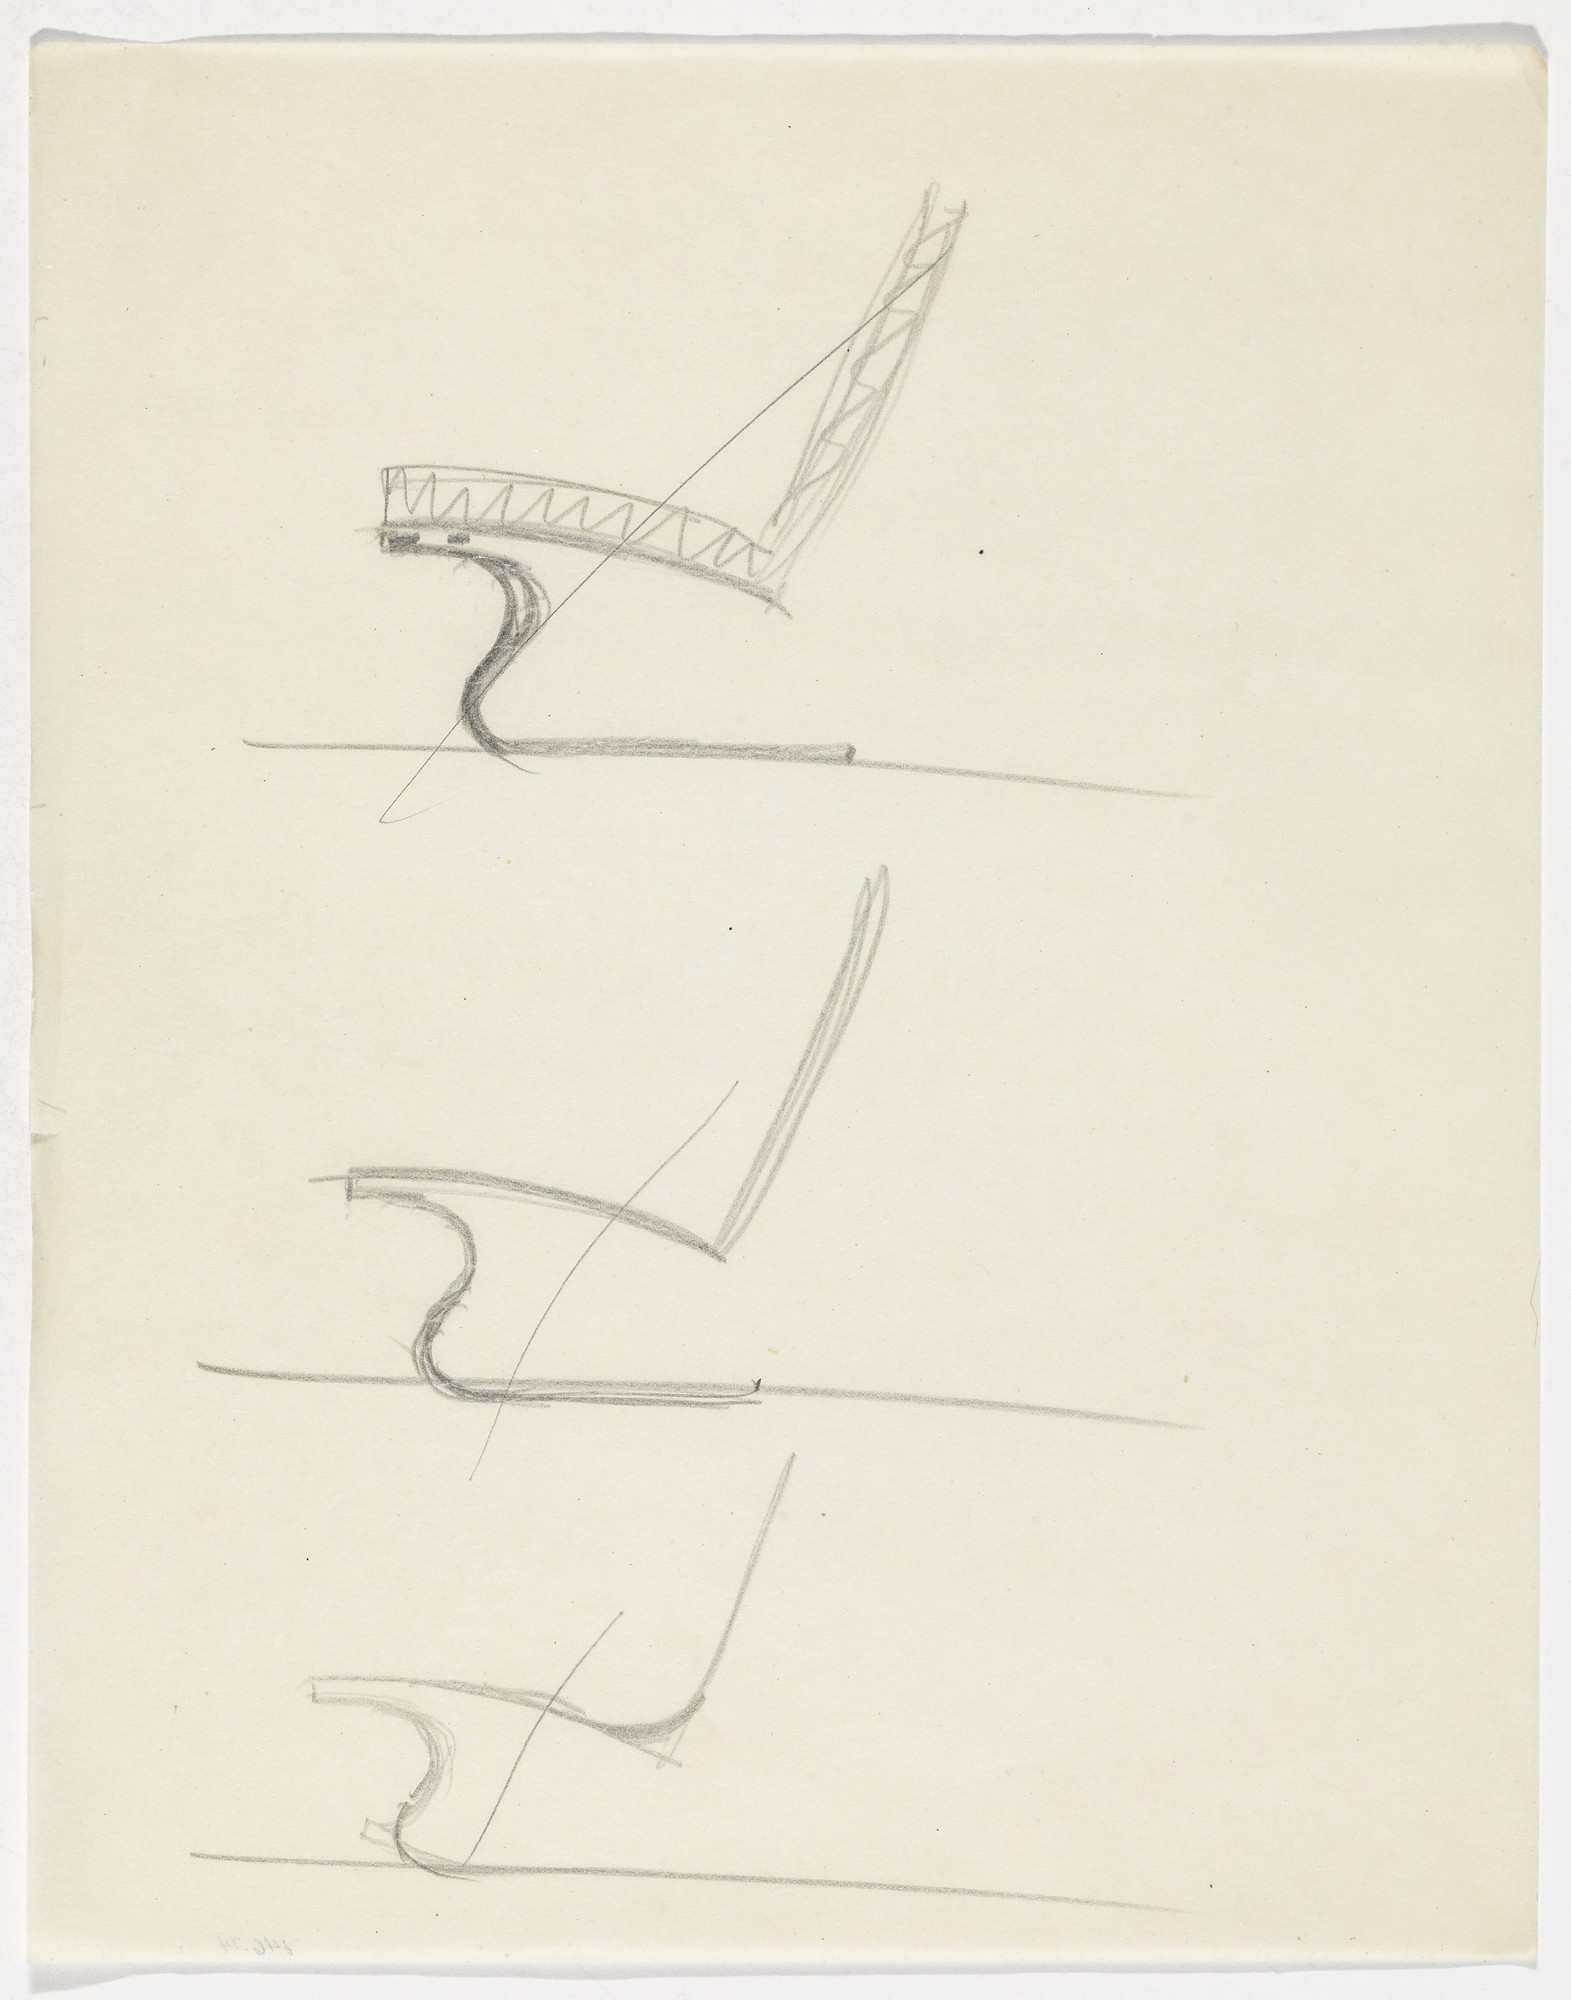 Ludwig Mies van der Rohe. Tugendhat Chair (Three elevation sketches). c.1930